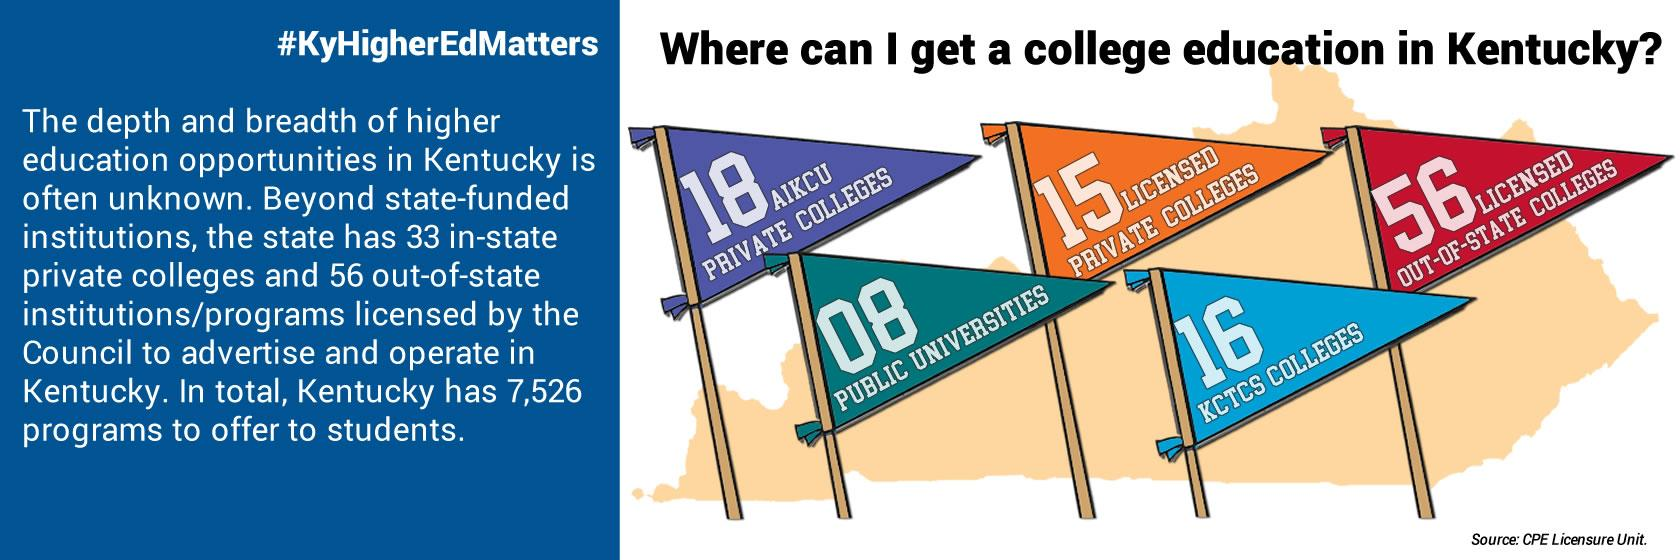 Kentucky has lots of opportunities for higher education.